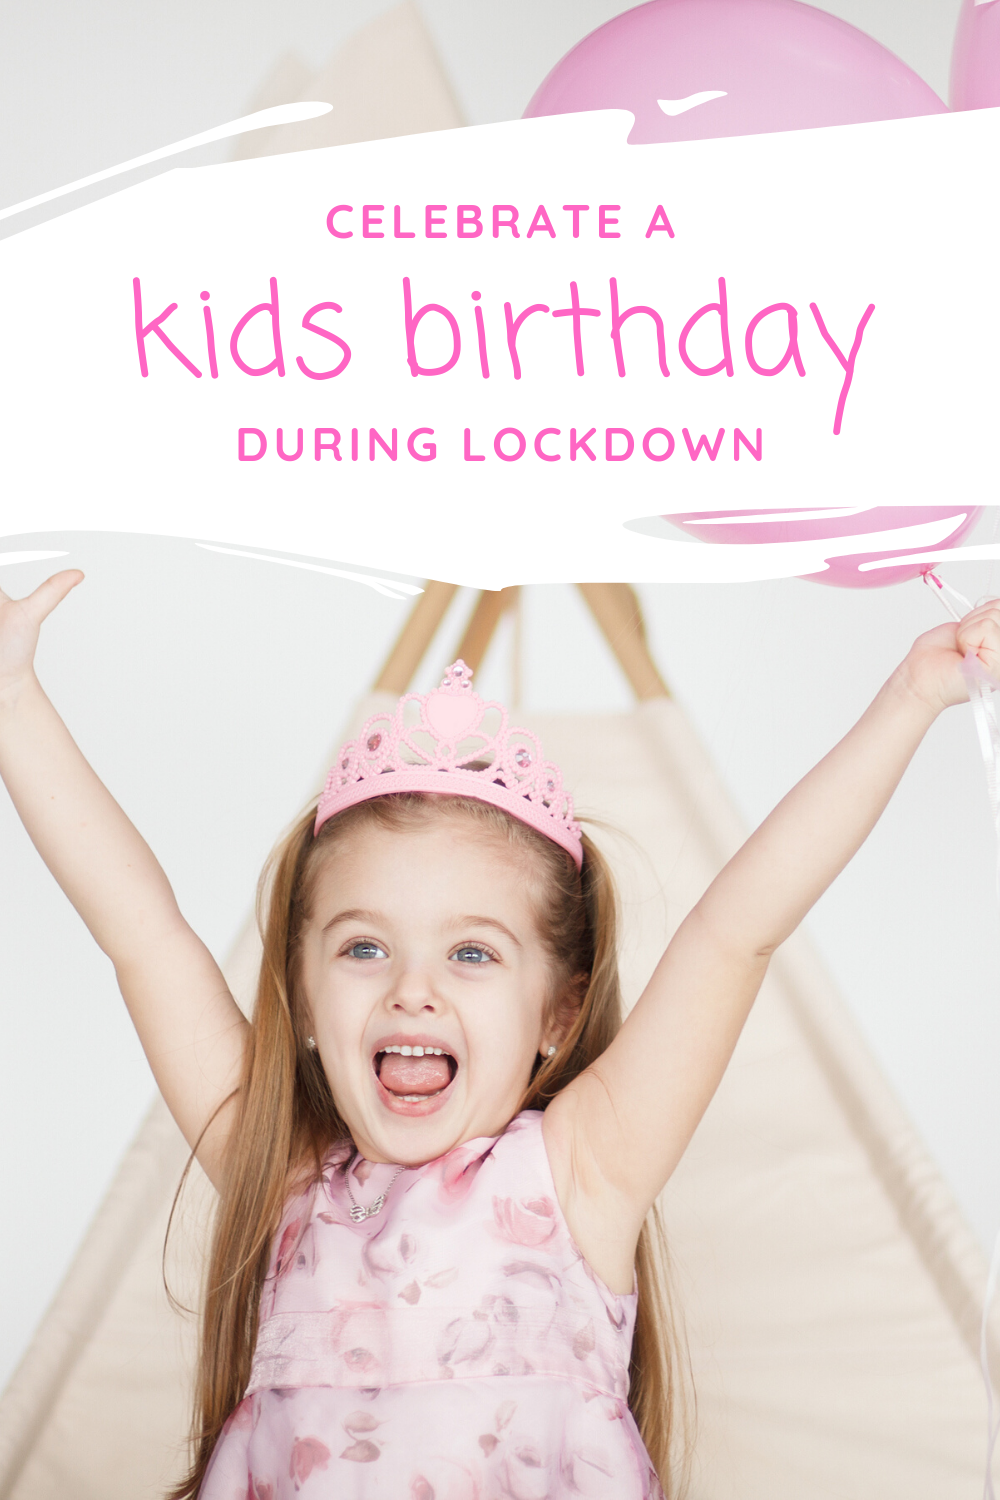 Tons of great ideas for celebrating a kids birthday and making the day special during social distancing and isolation. Let the fun commence!